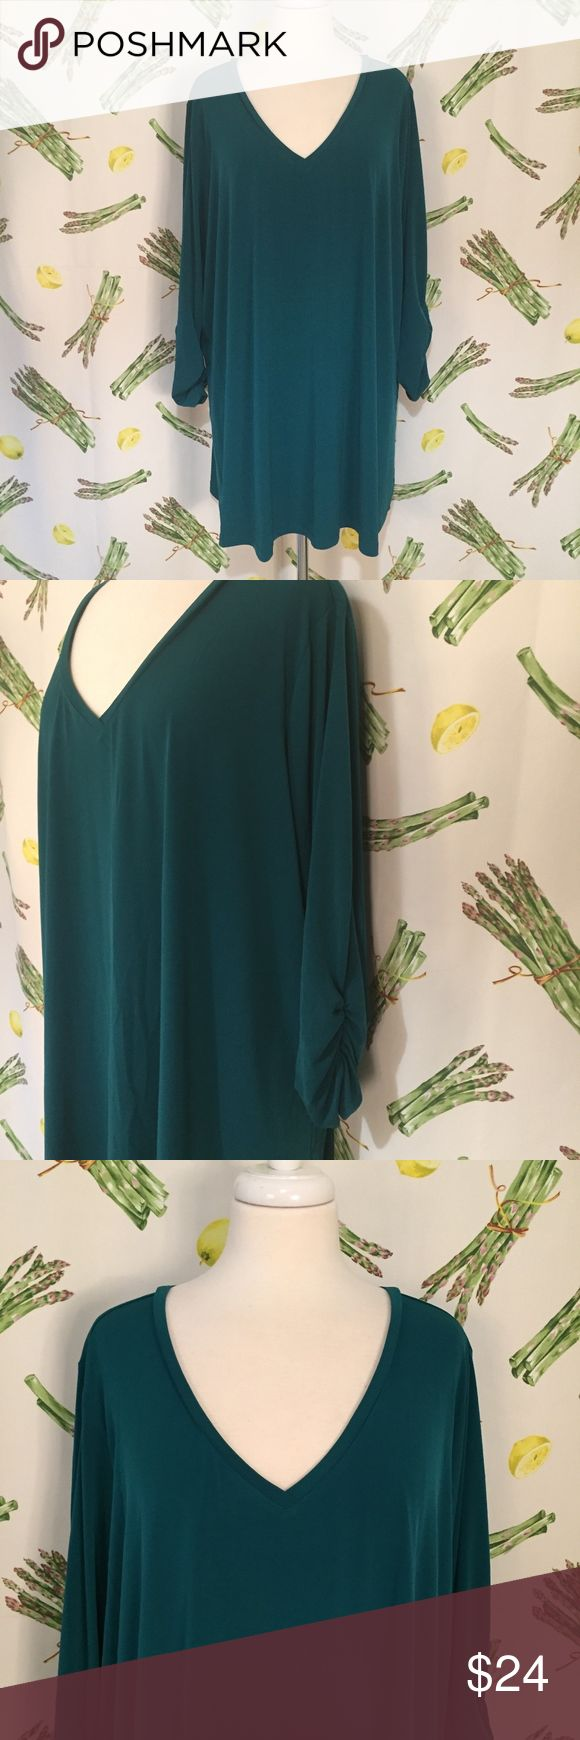 "Susan Graver V-Neck Teal Green Top Size 3X Brand: Susan Graver Size: 3X Description: V neck, 3/4 sleeves with raunched ends Condition: Very Good **Size tags vary, check measurements** Bust: 58"" Length: 30.5"" If more measurements are needed, please don't hesitate to ask! Bundle Discount Available! Reasonable offers welcome! No trades please.. Thanks for stopping by!! #Poshmark #Poshmarkapp #Poshmarkcloset Item #1897 Susan Graver Tops Blouses"